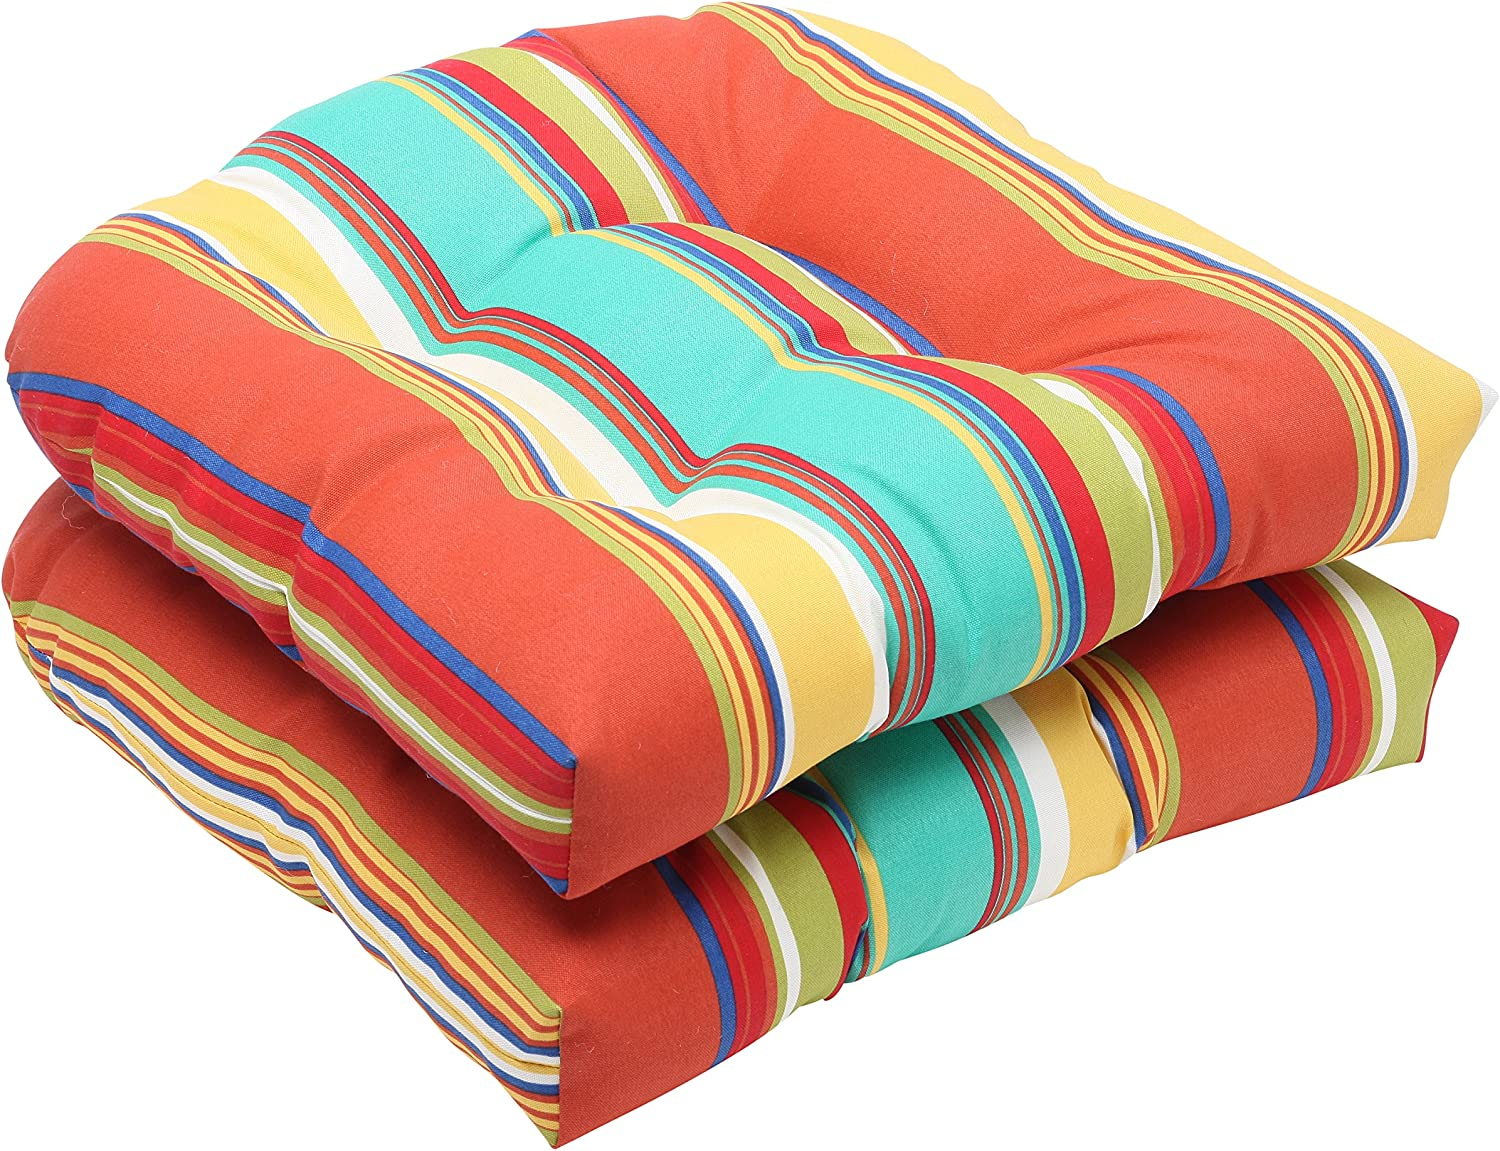 Pillow Perfect Outdoor Westport Spring Wicker Seat Cushion, Multicolord, Set of 2